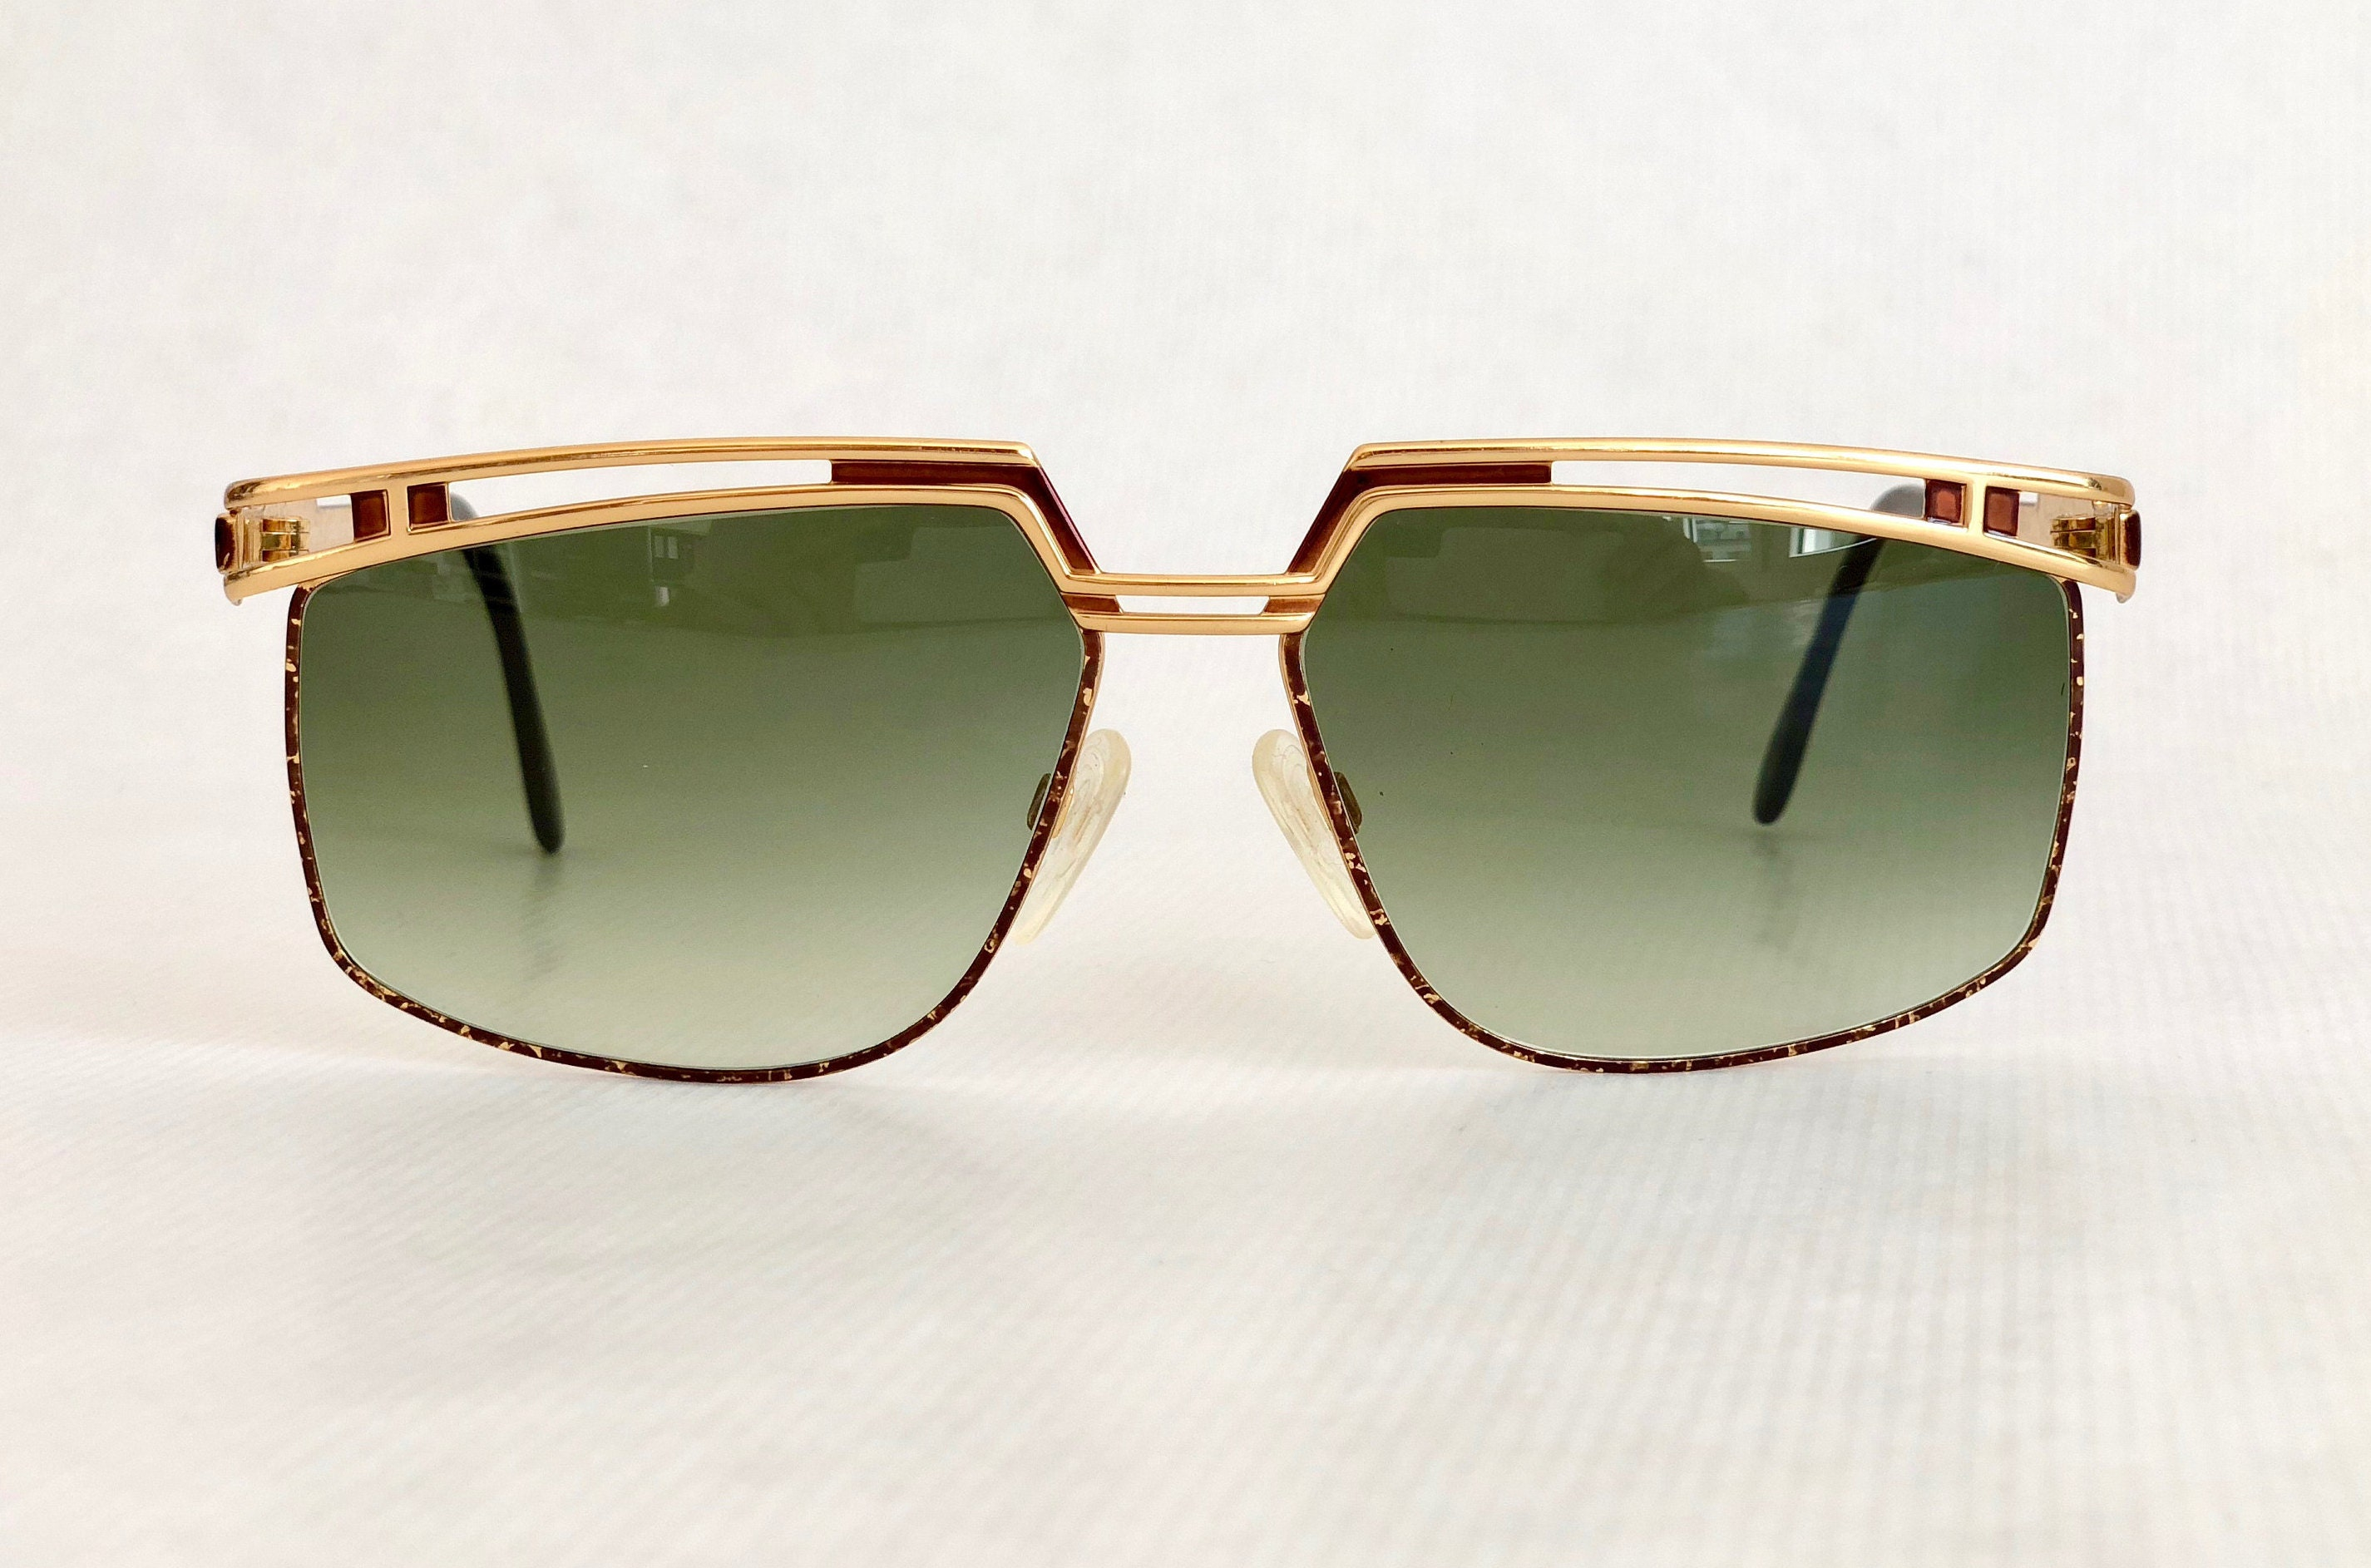 9cd440c92c4c Cazal Mod 957 Col 33 Vintage Sunglasses New Unworn Deadstock